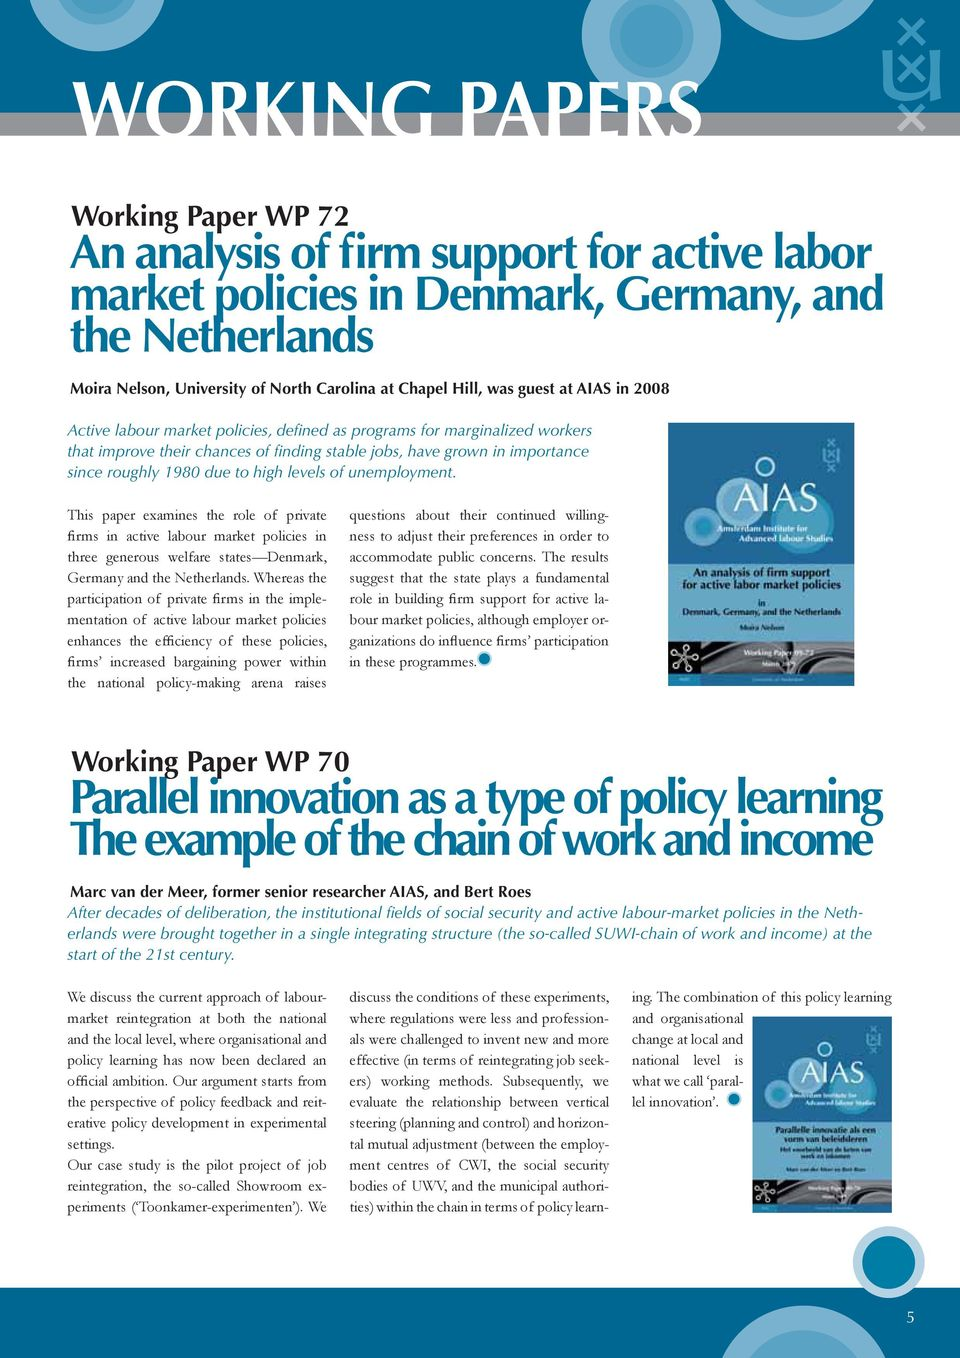 high levels of unemployment. This paper examines the role of private firms in active labour market policies in three generous welfare states Denmark, Germany and the Netherlands.